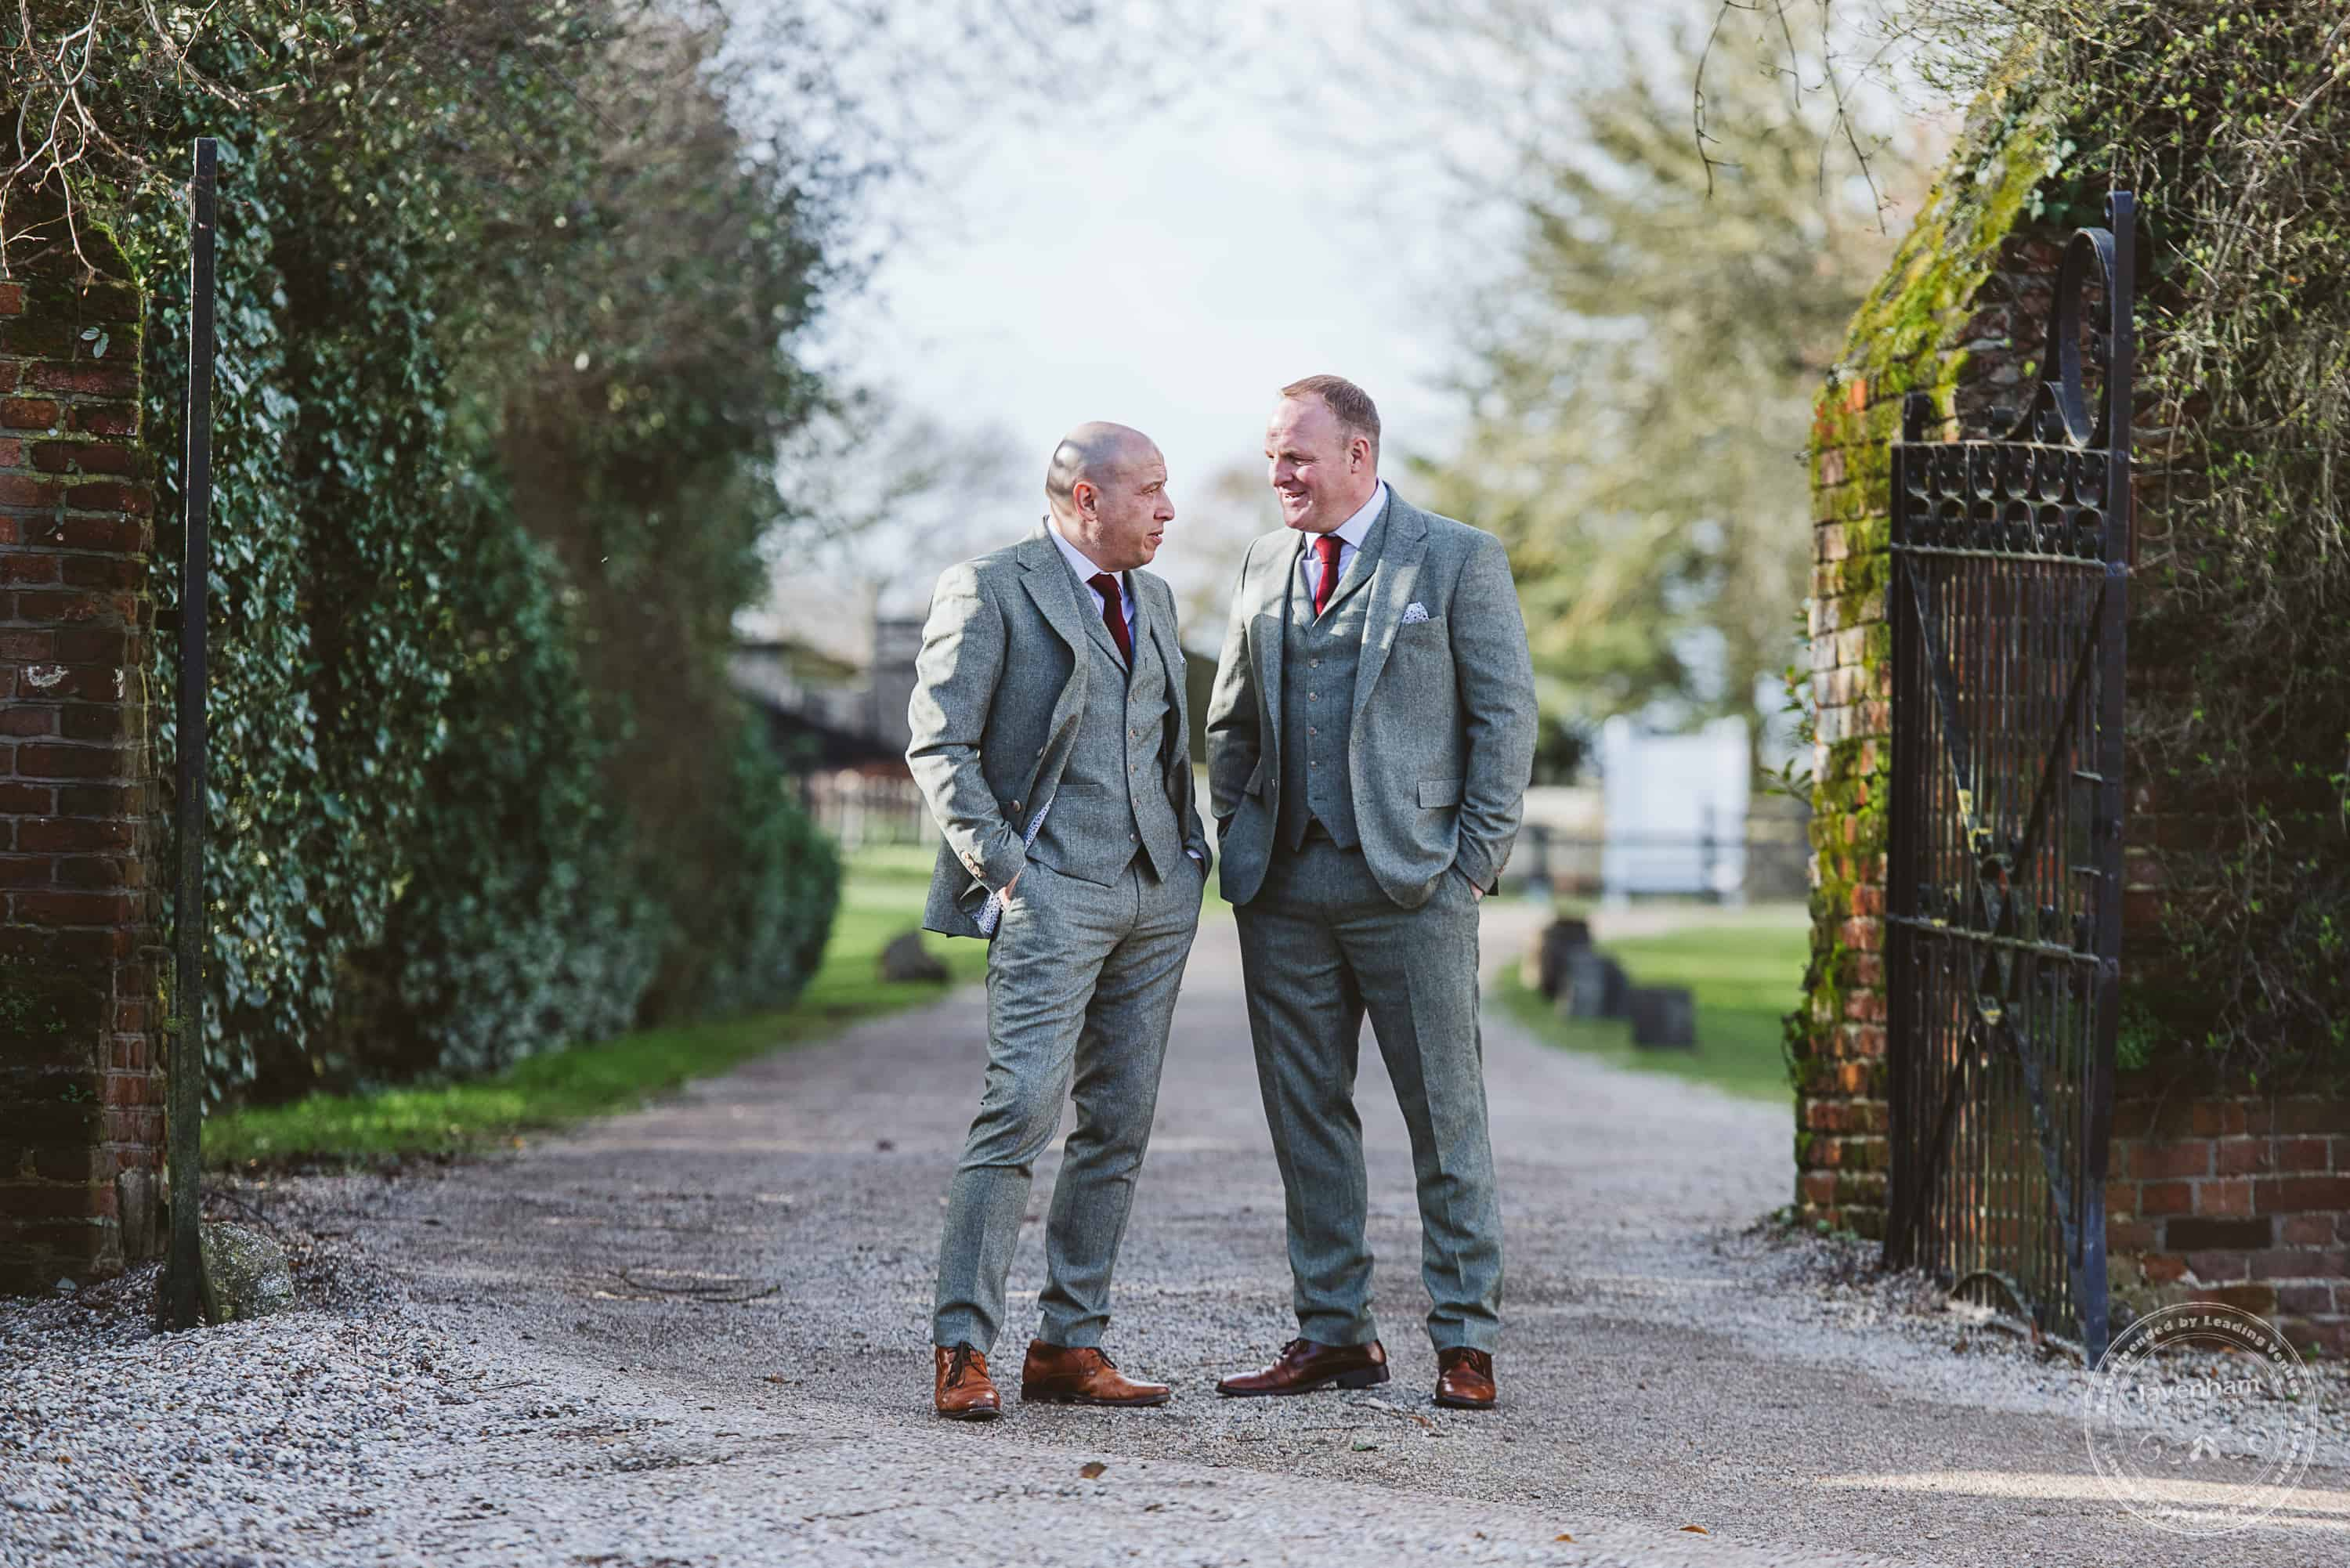 010220 Leez Priory Wedding Photographer 029